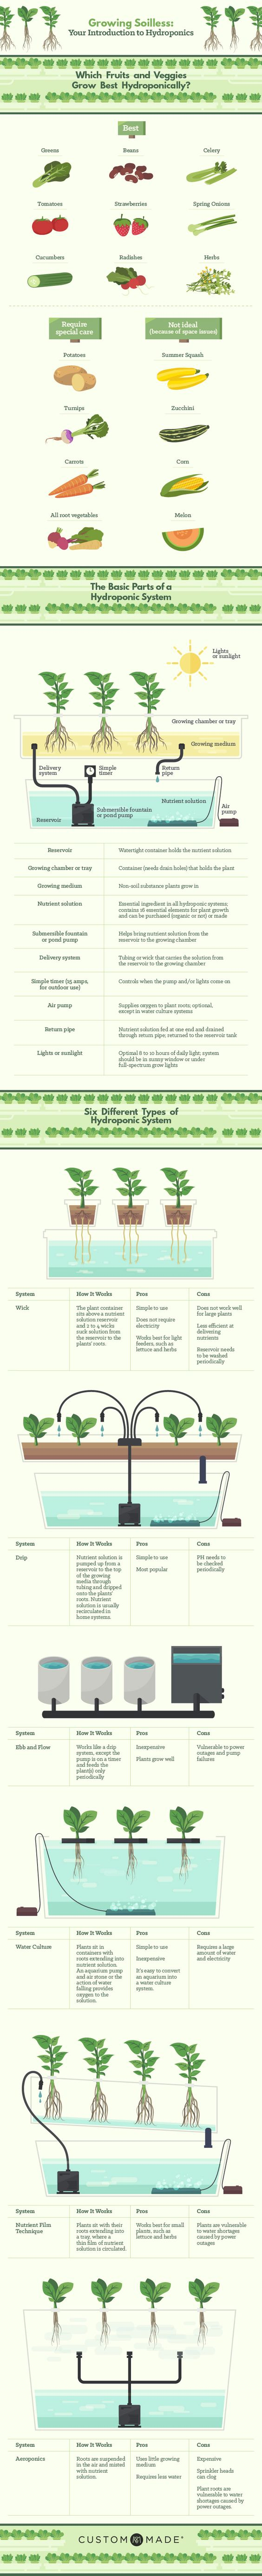 Growing Soilless: Your Introduction to Hydroponics.  http://www.custommade.com/blog/introduction-to-hydroponics/